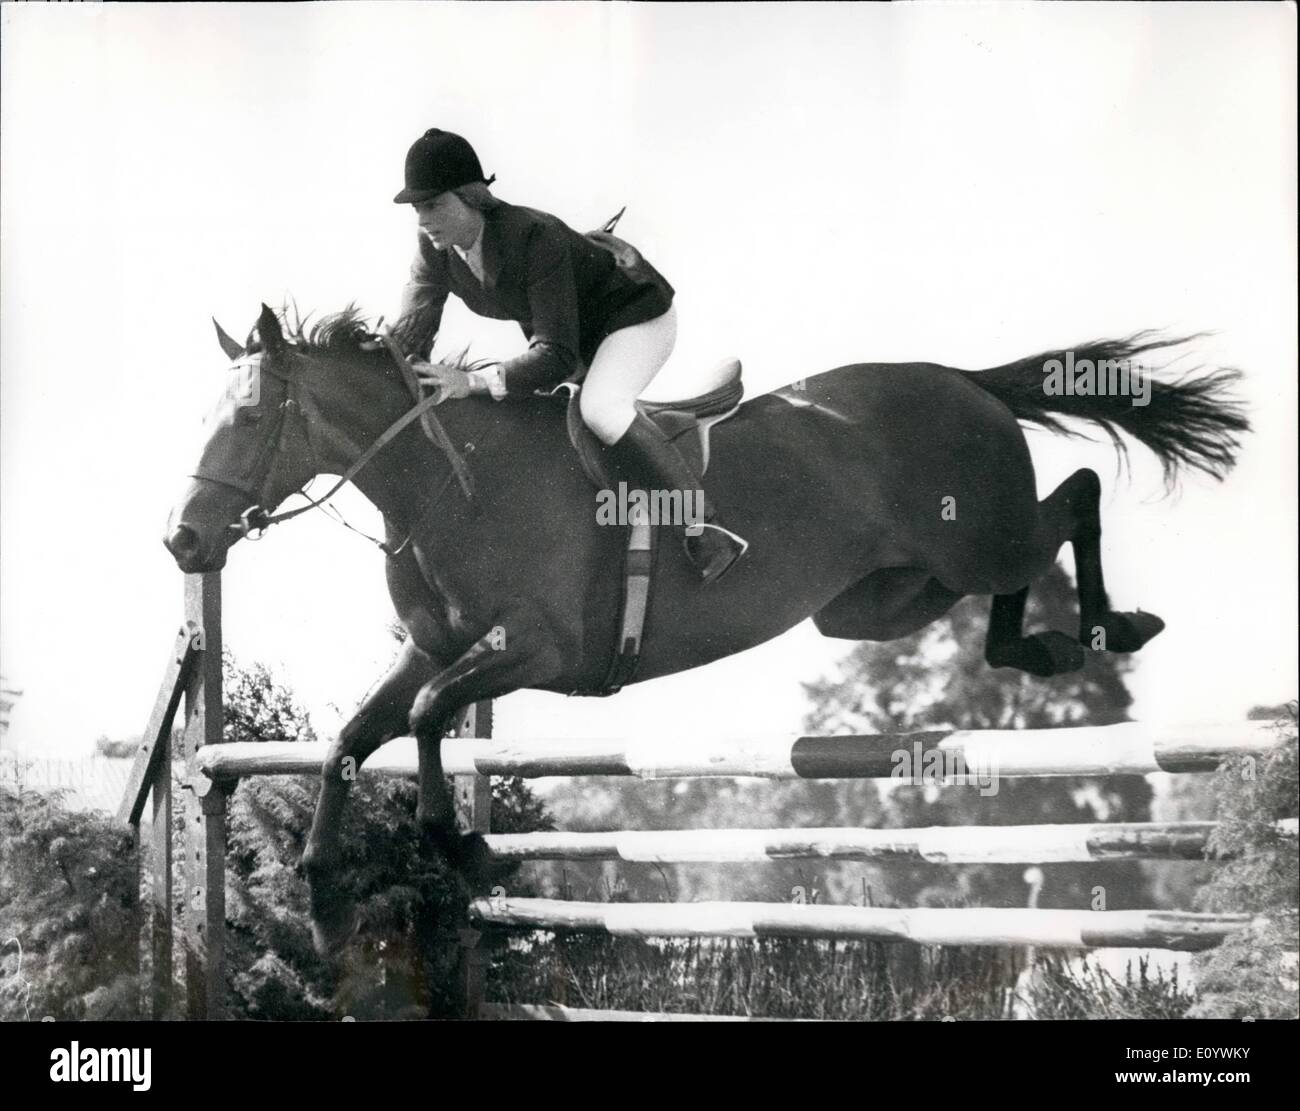 Aug. 08, 1971 - Greater London Horse Show At Clapham Common: The Greater London Horse Show, promoted by the Greater London Council, which is being held today and on Monday at Clapham Common, has attracted many of the country's top riders. Photo shows Mrs. Marion Mould, riding Opportunity II - taking one of the jumps when winning the ''Daily Express'' Foxhunter Regional Final, at the show today. - Stock Image